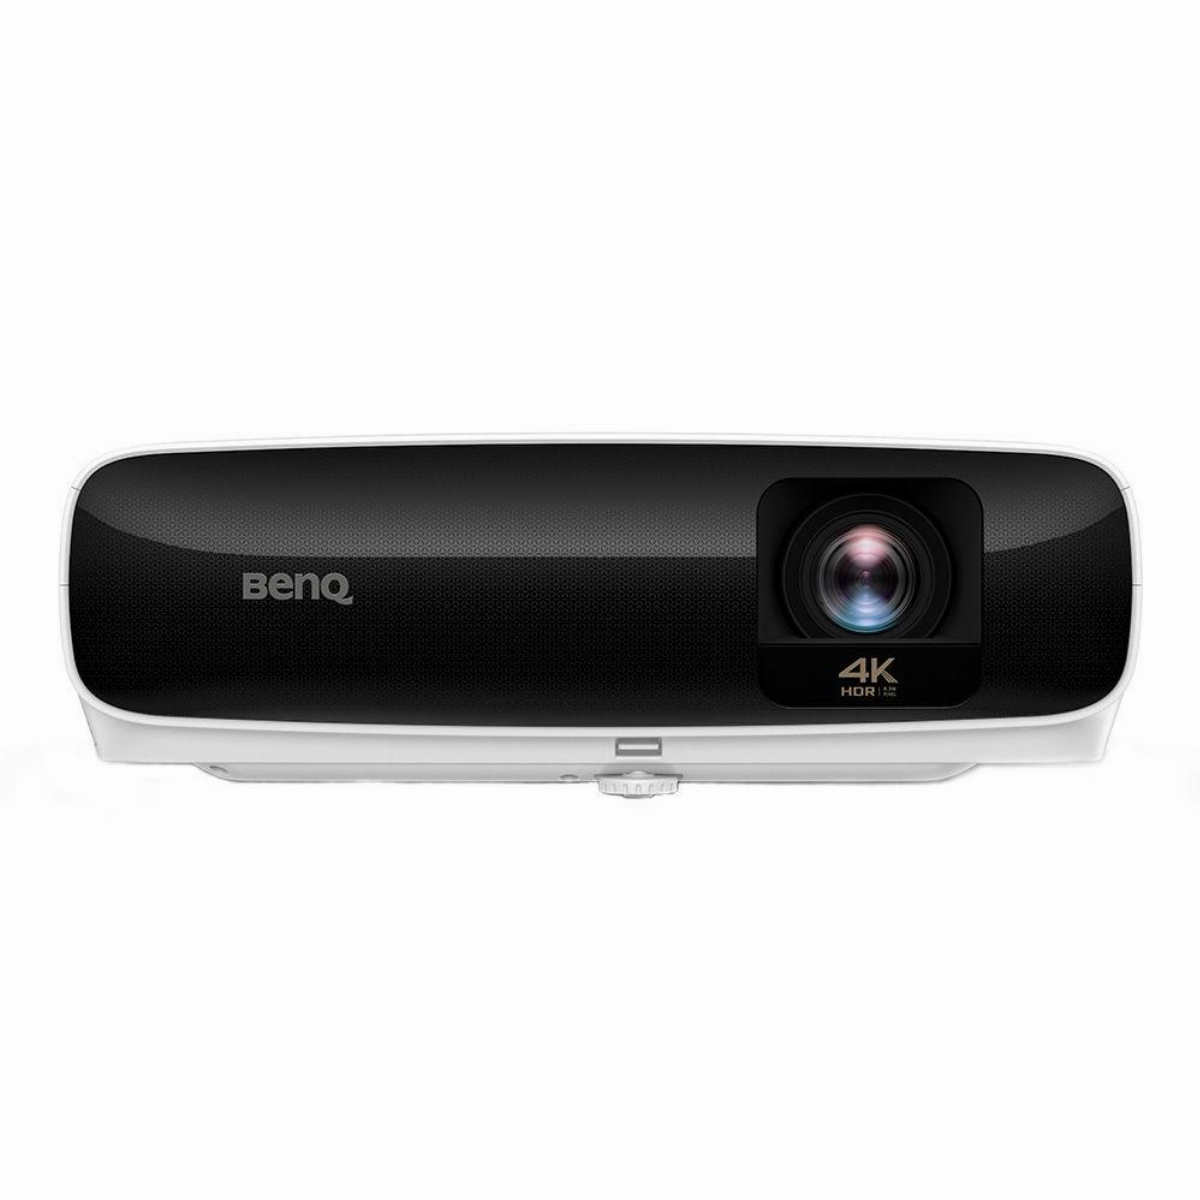 Видеопроектор BenQ TK810, DLP, 4K, 3200 ANSI, 10000:1, Rec.709 (92%), HDR10, CinemaMaster Audio+2, CinemaMaster Video+, Smart, Bluetooth 4.0, WiFi, Бял